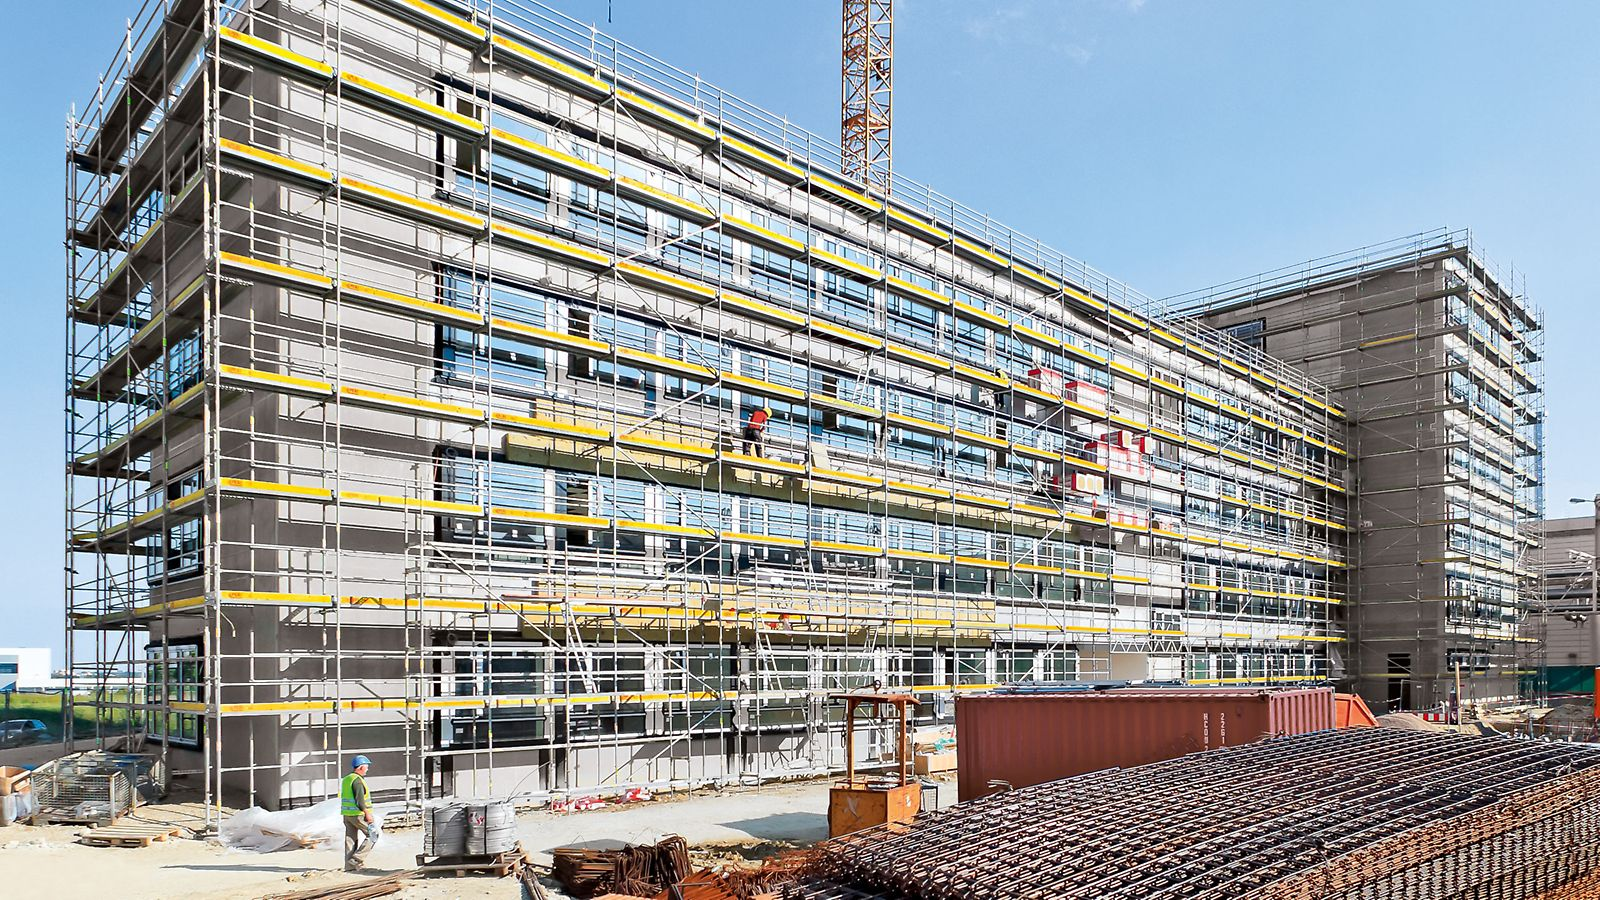 PERI UP frame working scaffold allows fast and safe assembling due to the system-integrated fall protection.